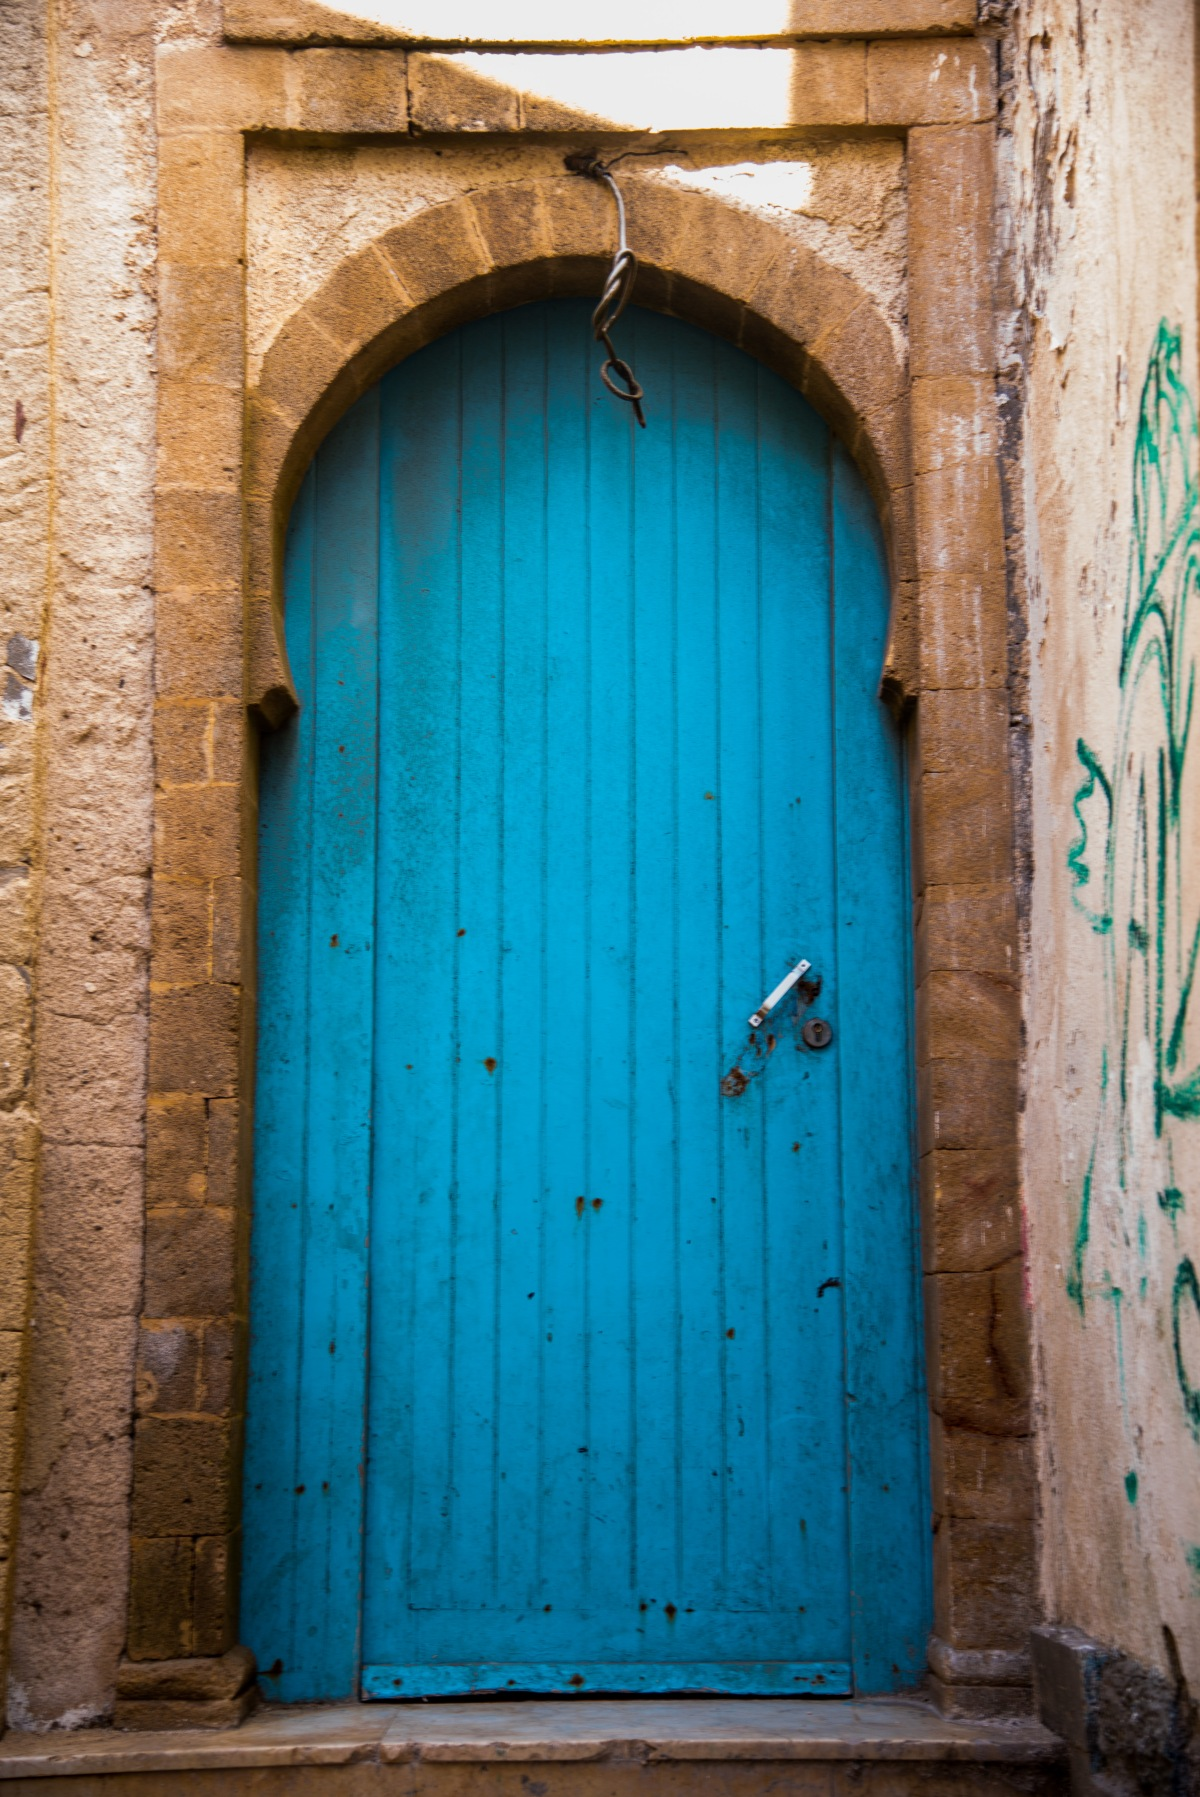 #morocco, #travel, #africa, #essaouira, #doors, #travelphotography, #photography, #culture, #citylife,